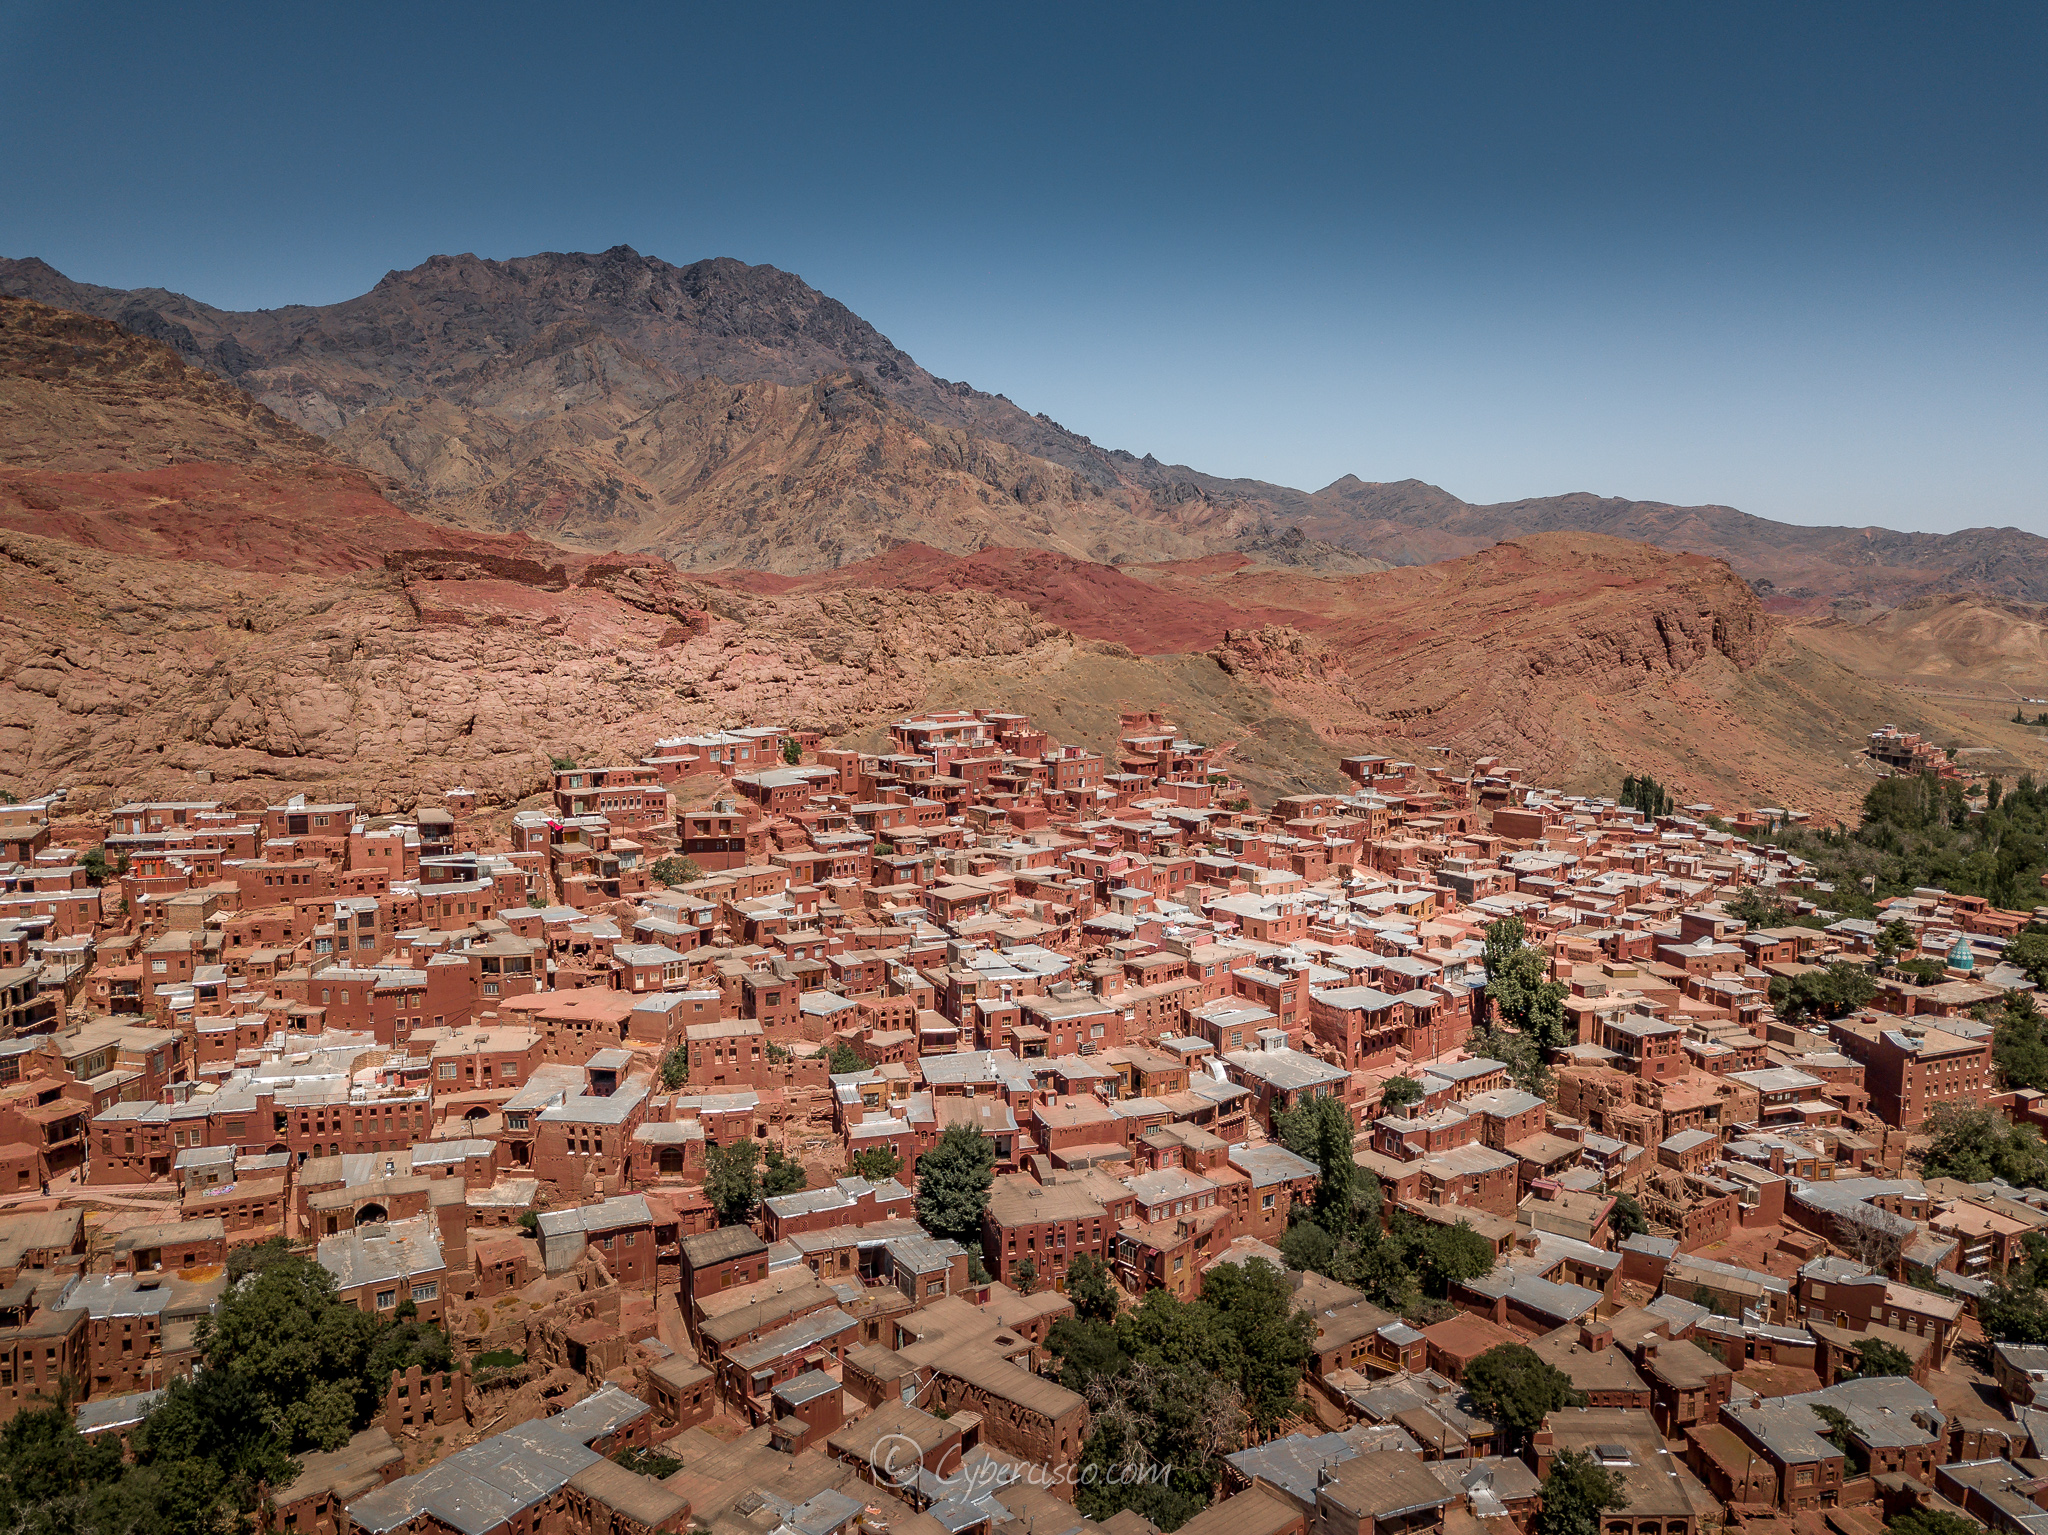 village of Abyaneh, Iran